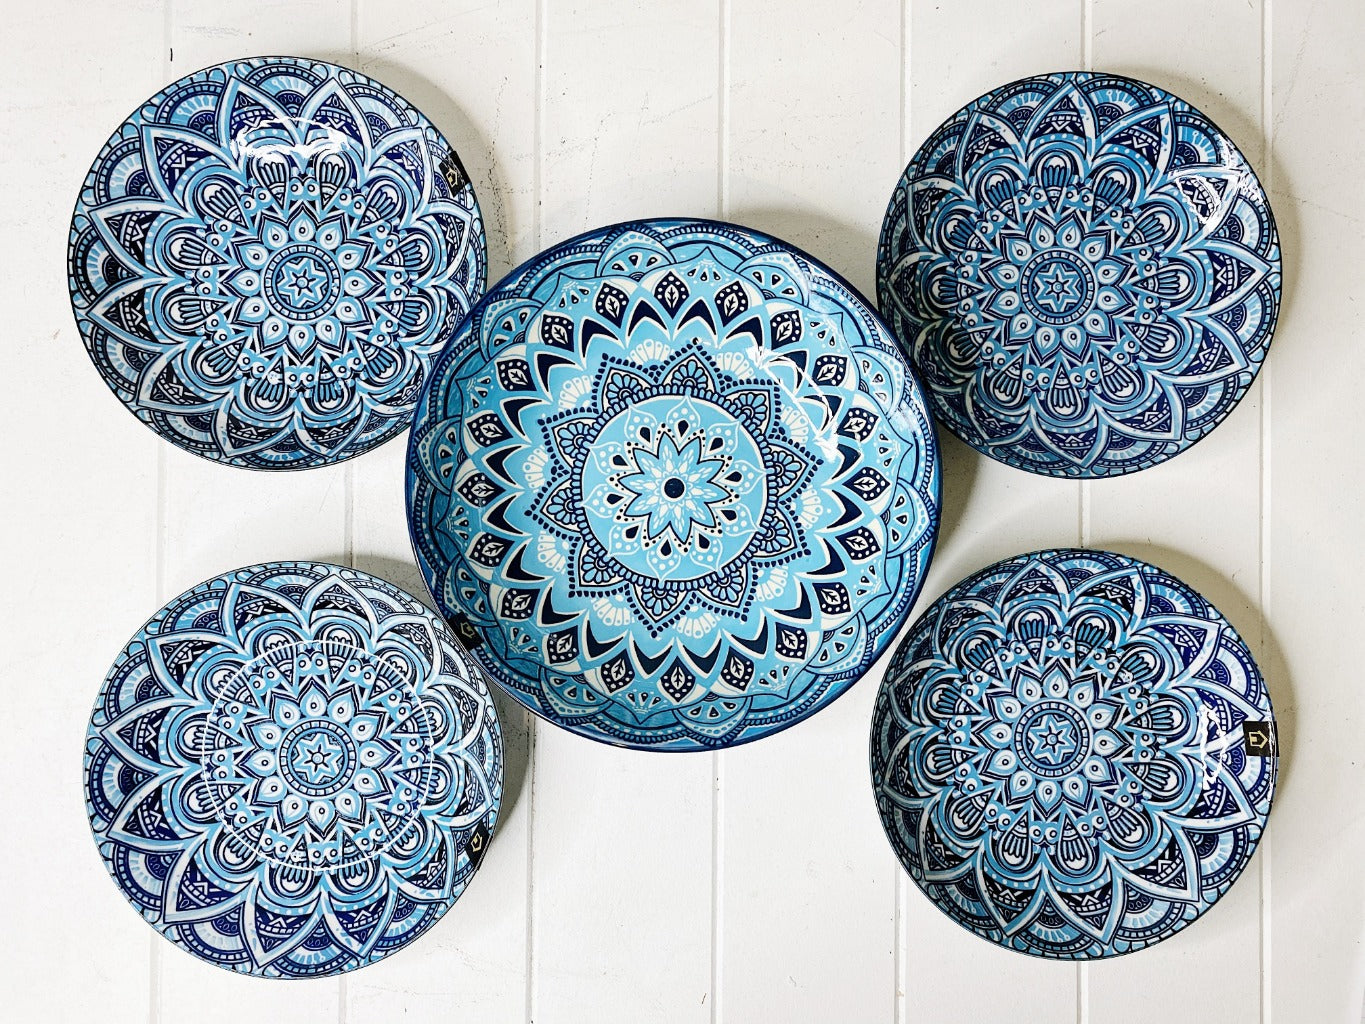 Casablanca 5 Piece Pasta Set has everything you need for the perfect Italian night with your friends and family. Enjoy the striking bright blue patterns which are sure to be the stand out pieces on the table. Shop online or instore. AfterPay available. Australia wide Shipping. | Bliss Gifts & Homewares | Unit 8, 259 Princes Hwy Ulladulla | South Coast NSW | 0427795959, 44541523